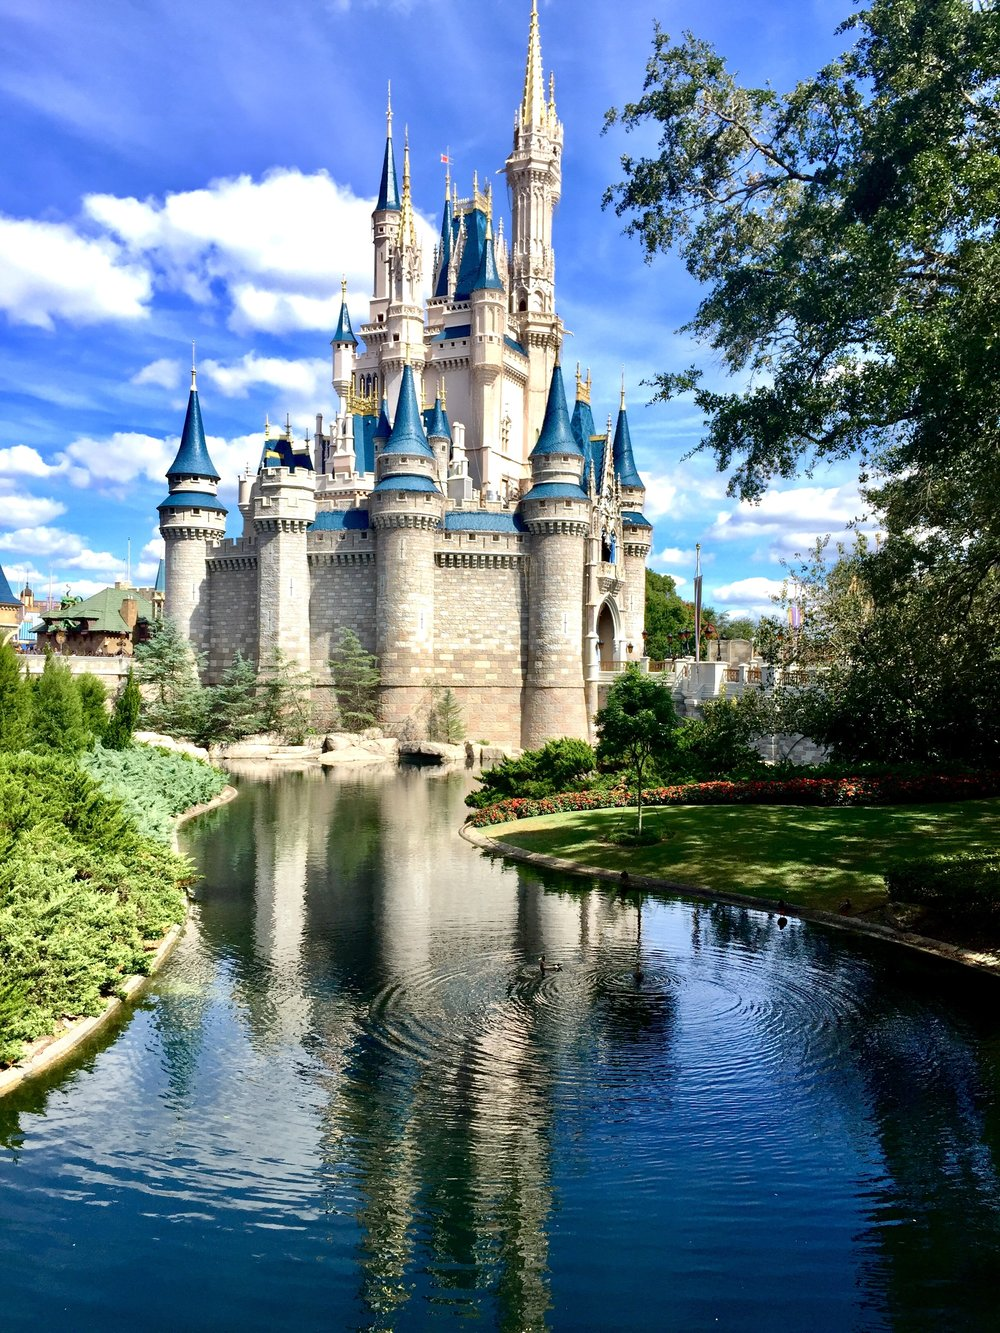 Cinderella's Castle, Magic Kingdom Photo by  Jorge Martínez  on  Unsplash